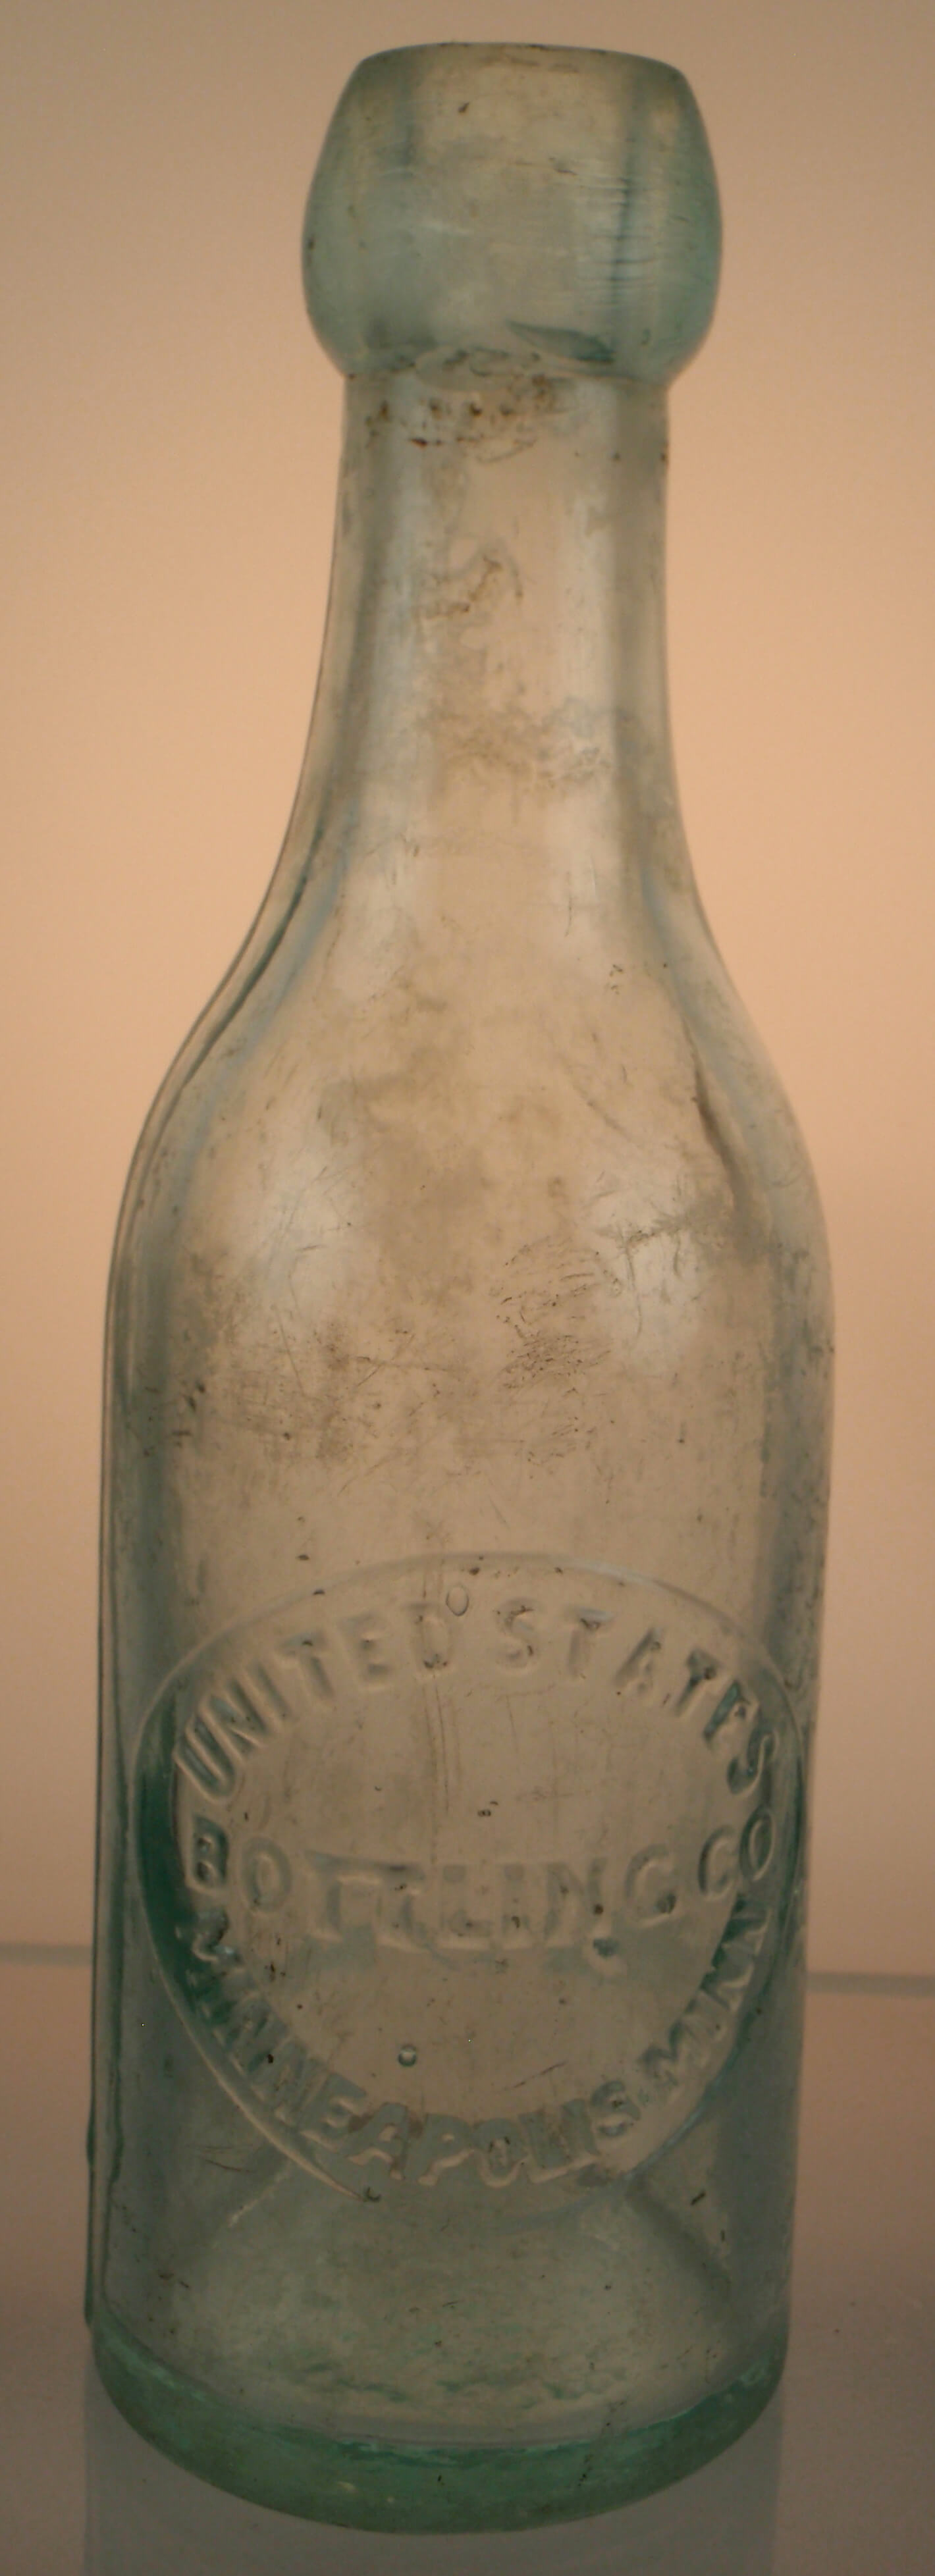 Pre-Prohibition United States Bottling Company Blob-Top beer Bottle